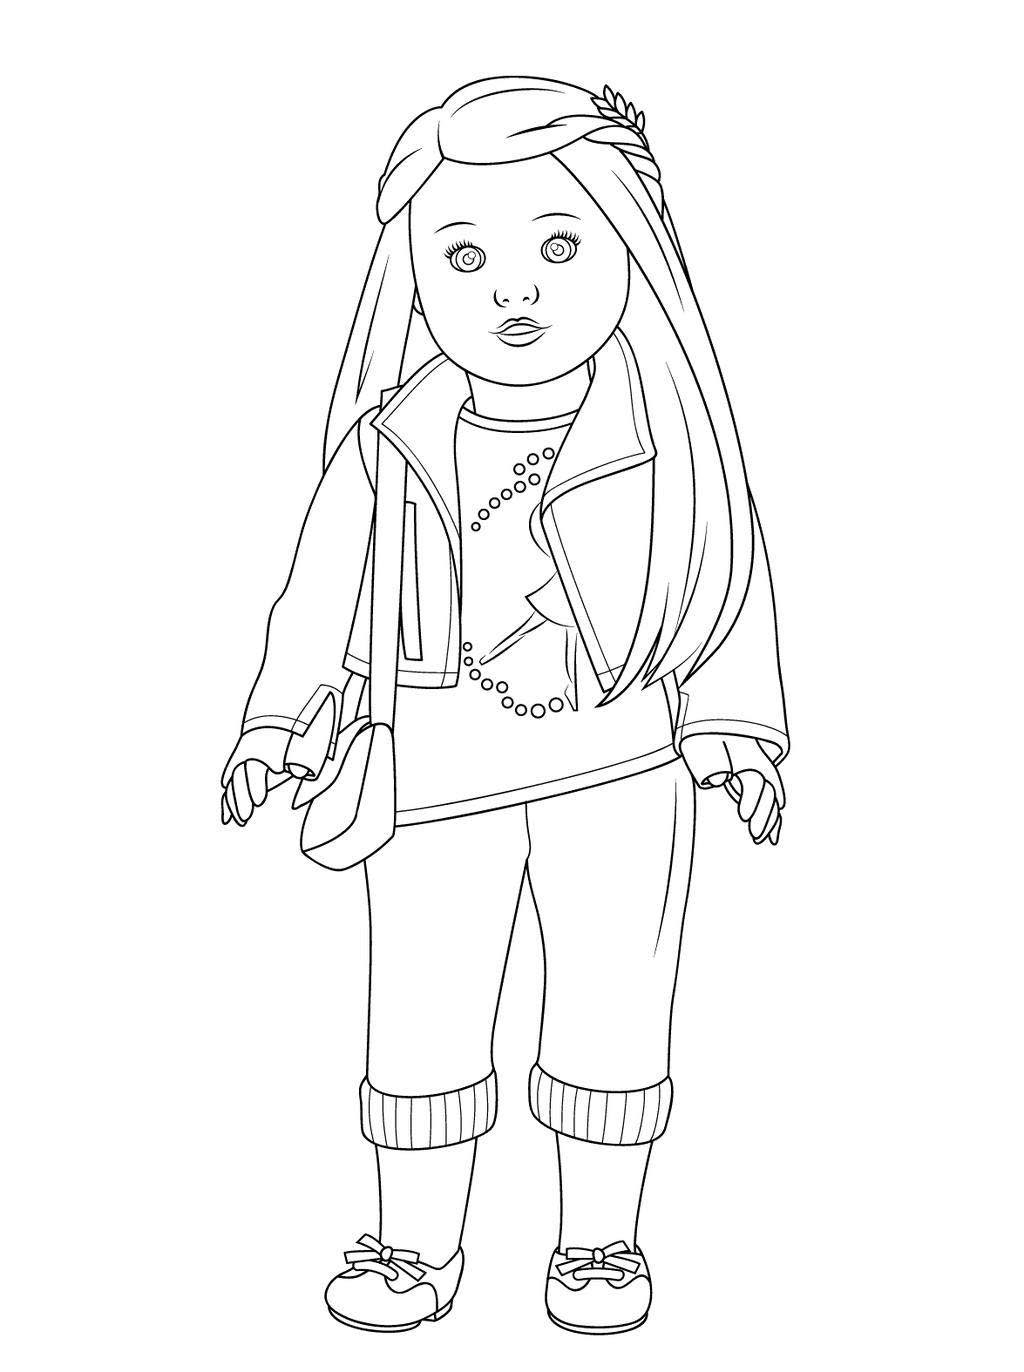 American Girl Coloring Pages Lea Coloring American Girl Coloring Pages Tenney Doll Lea Kanani Julie